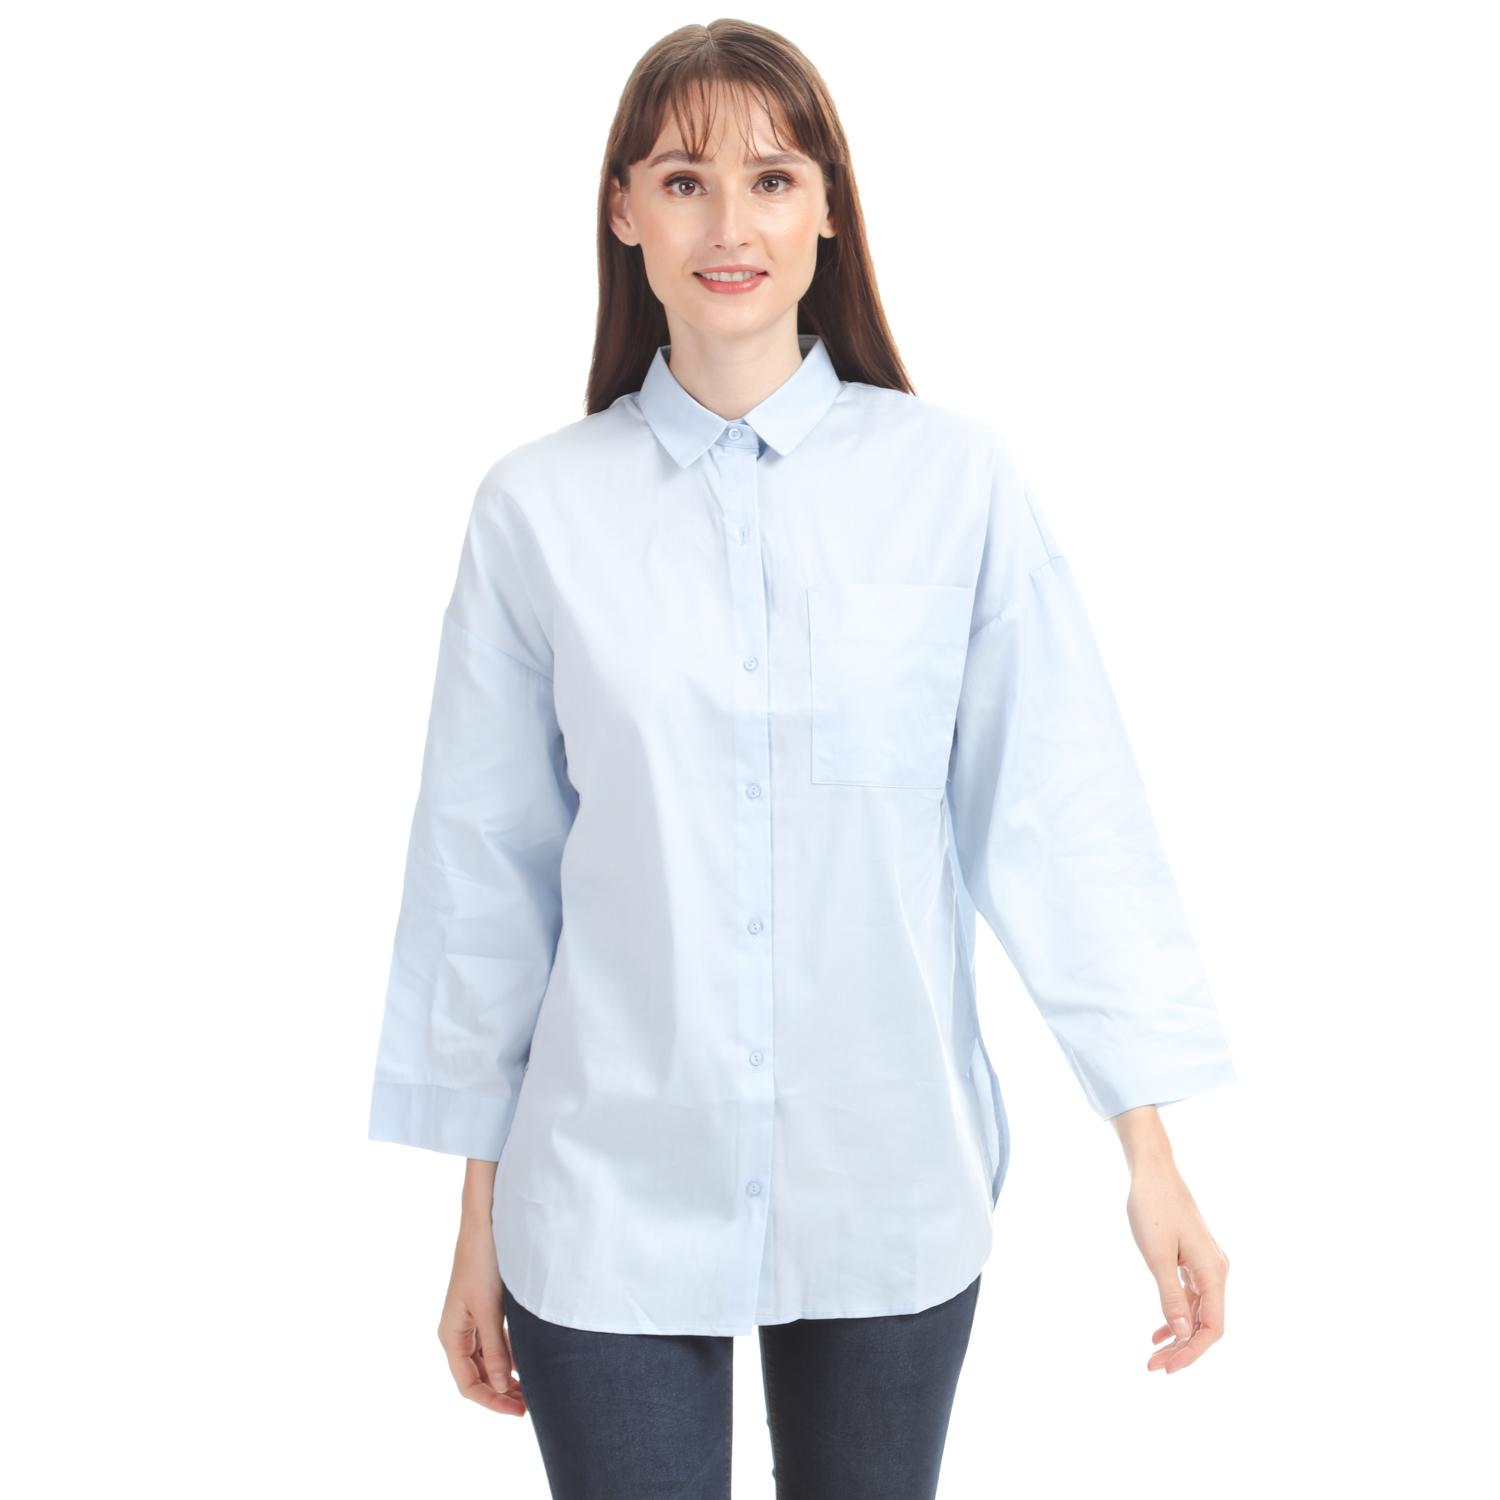 b126e337705f SM Woman Philippines: SM Woman price list - Shirts, Dress & Tops for ...